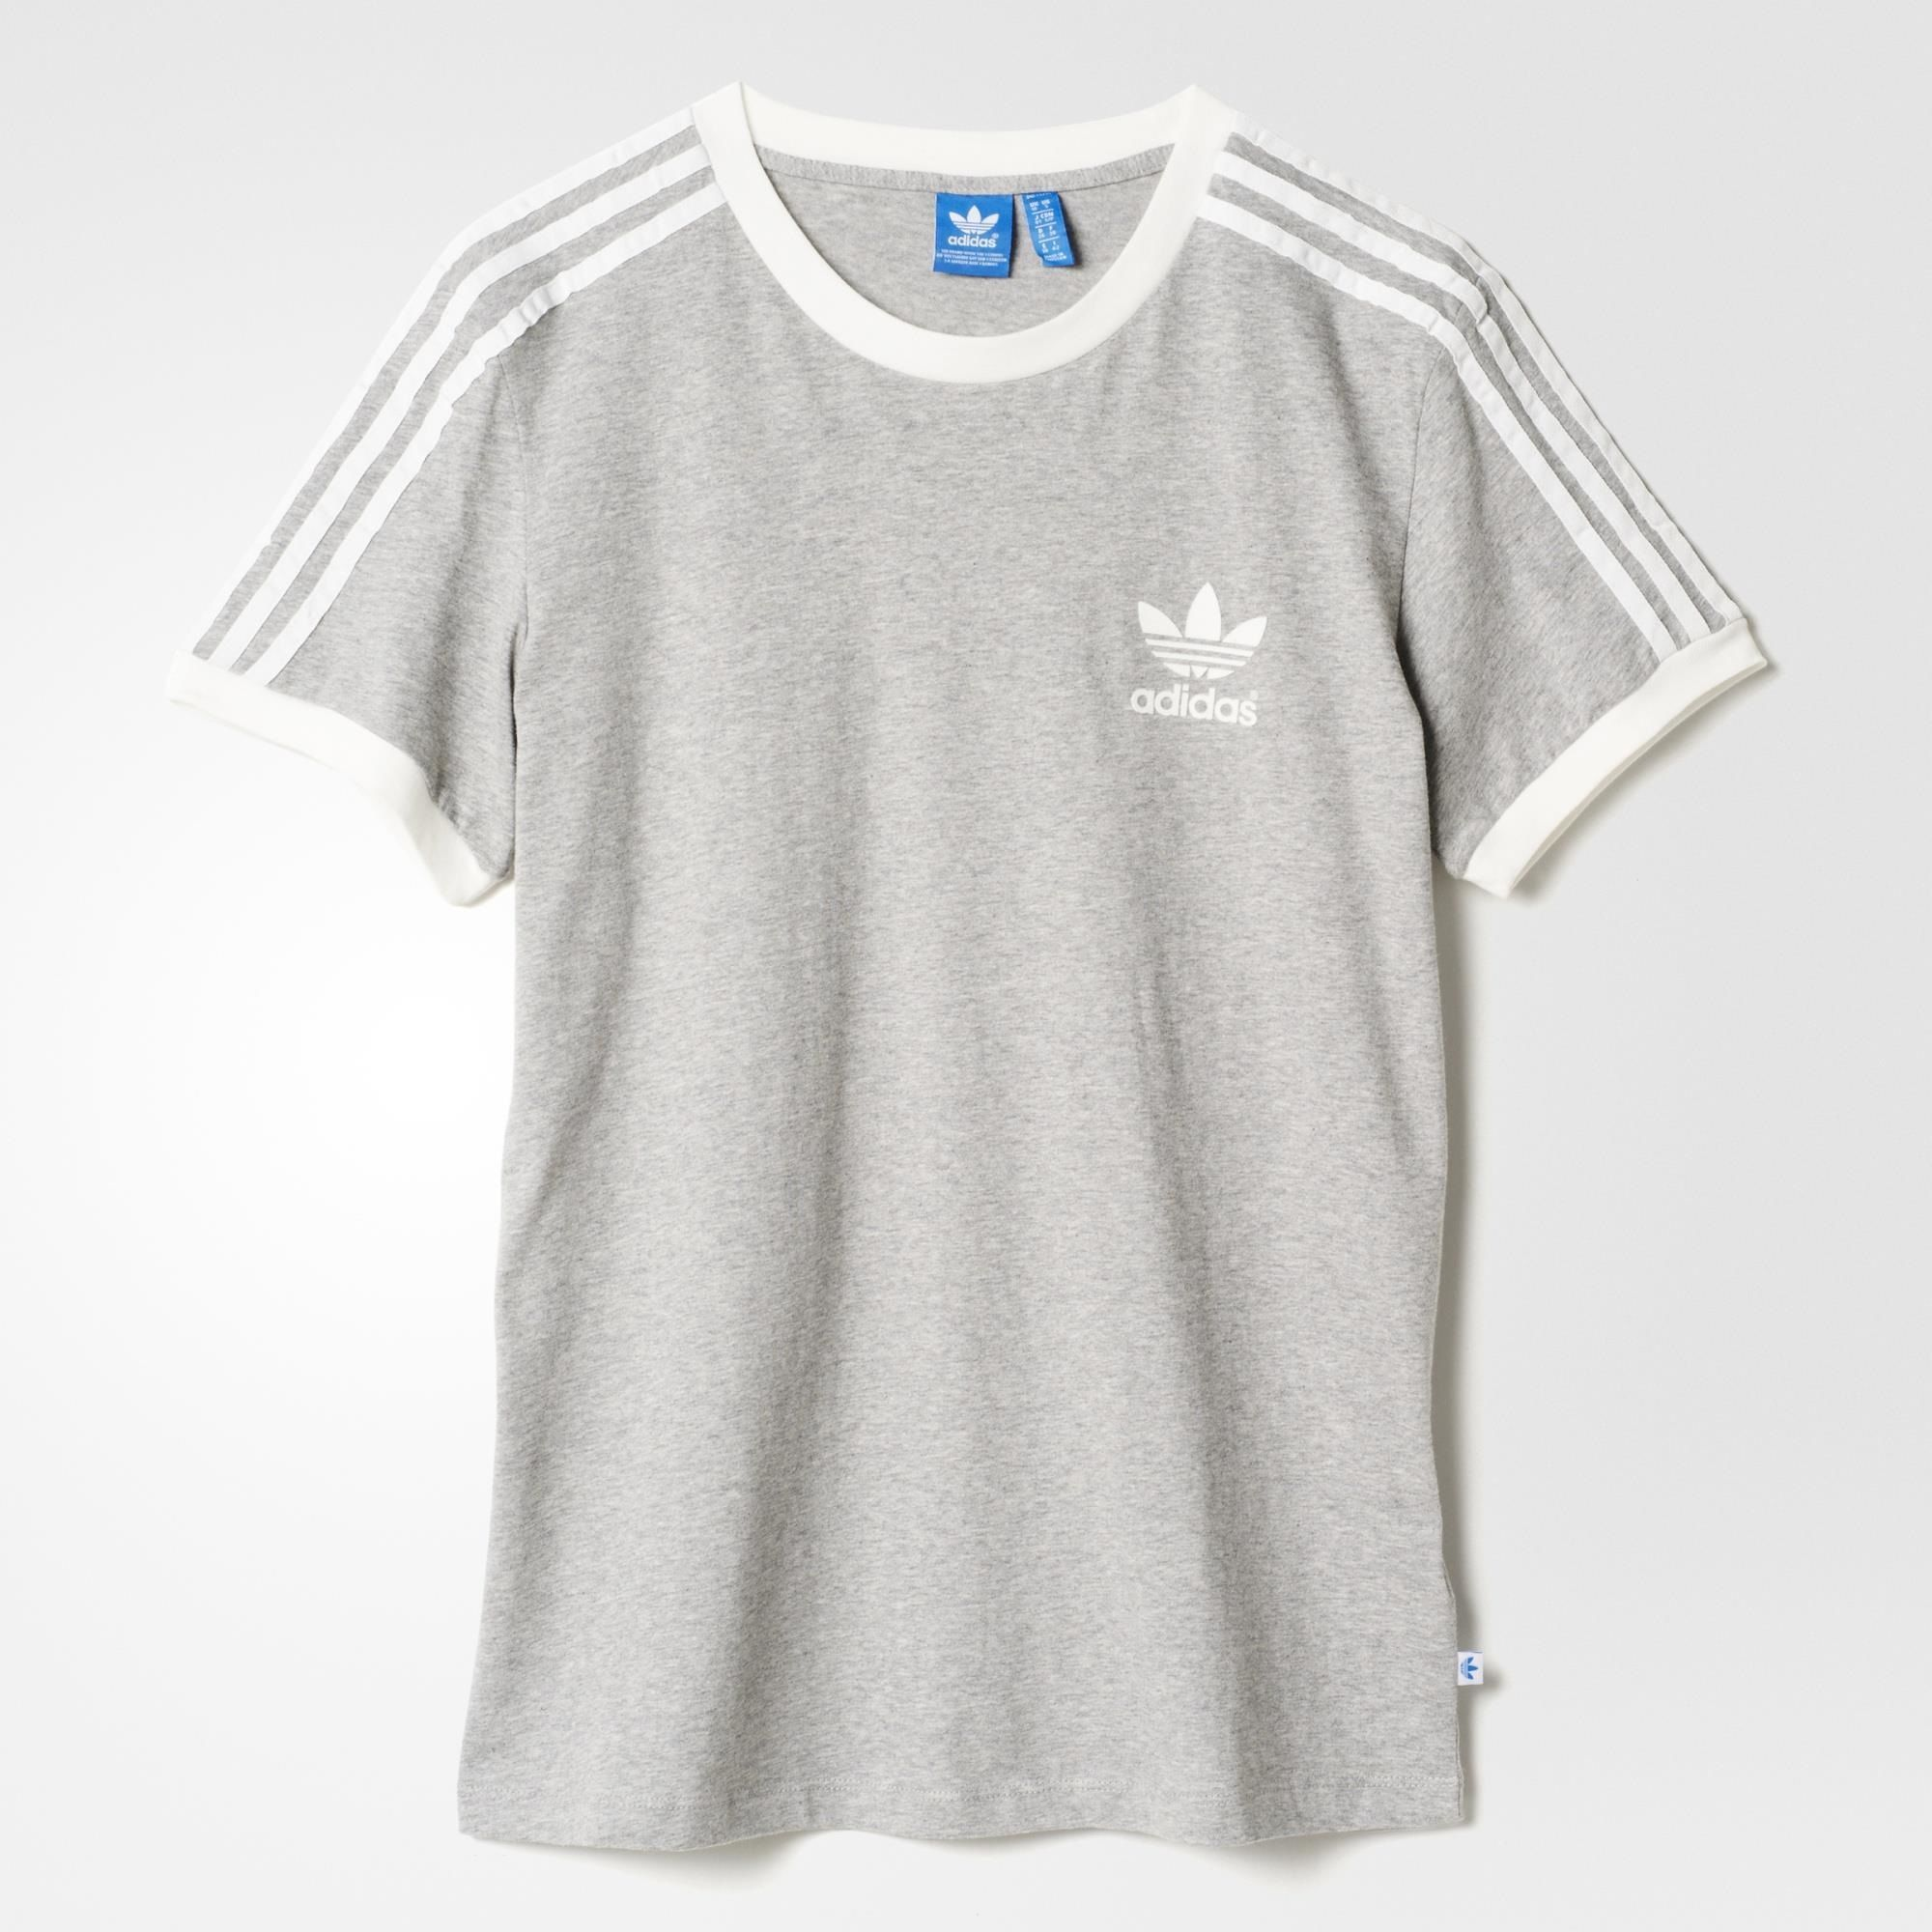 adidas 3-Stripes Tee - Grey | adidas US in 2019 | Addidas ...